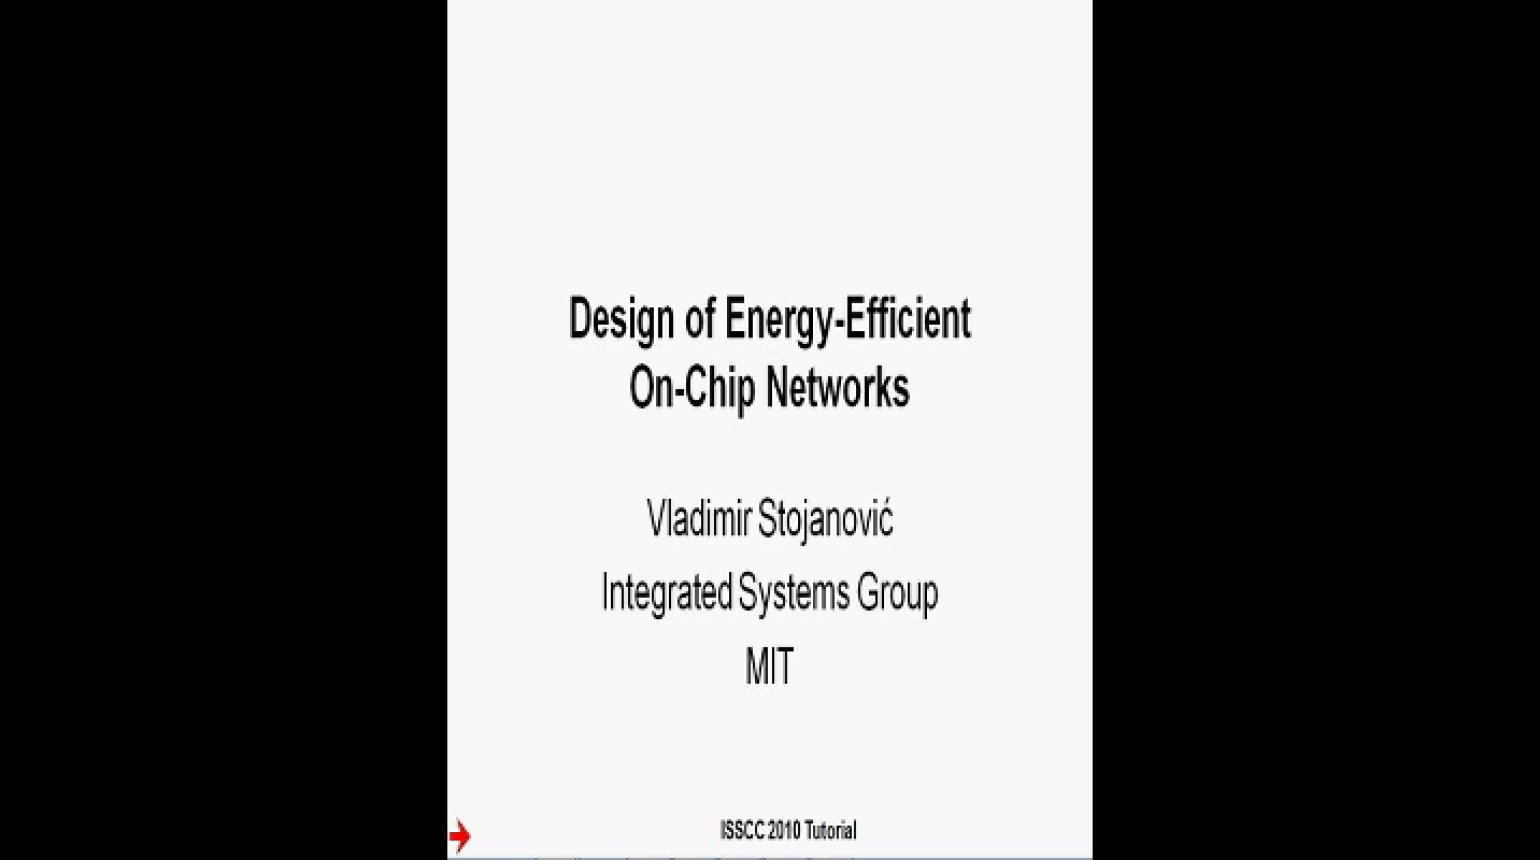 Design of Energy-Efficient On-Chip Networks Video